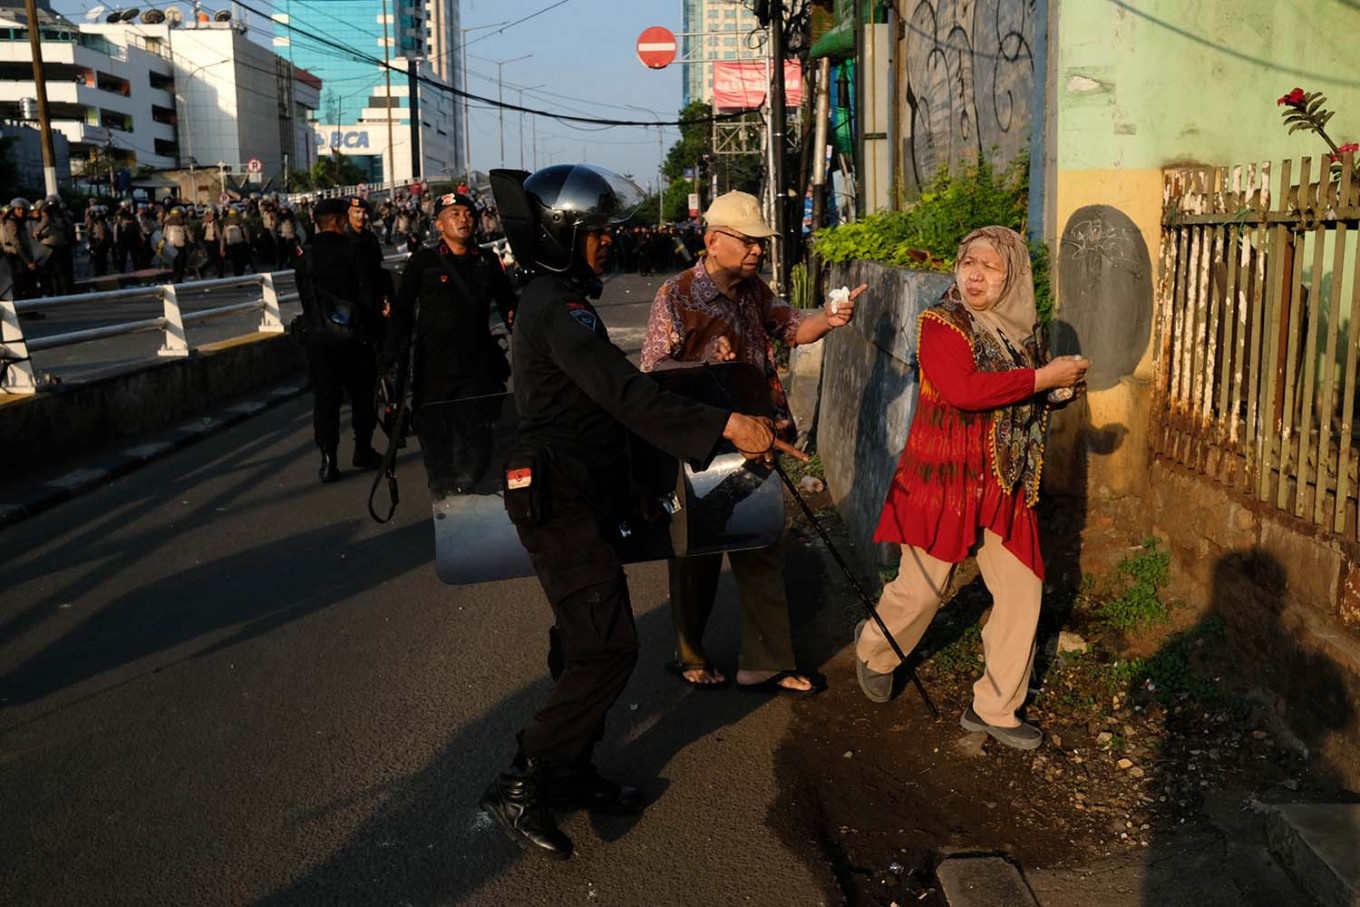 Mobile Brigade (Brimob) officers safeguard elders as they pass protestors on their way back to their home next to Slipi Market, West Jakarta. JP/Jerry Adiguna